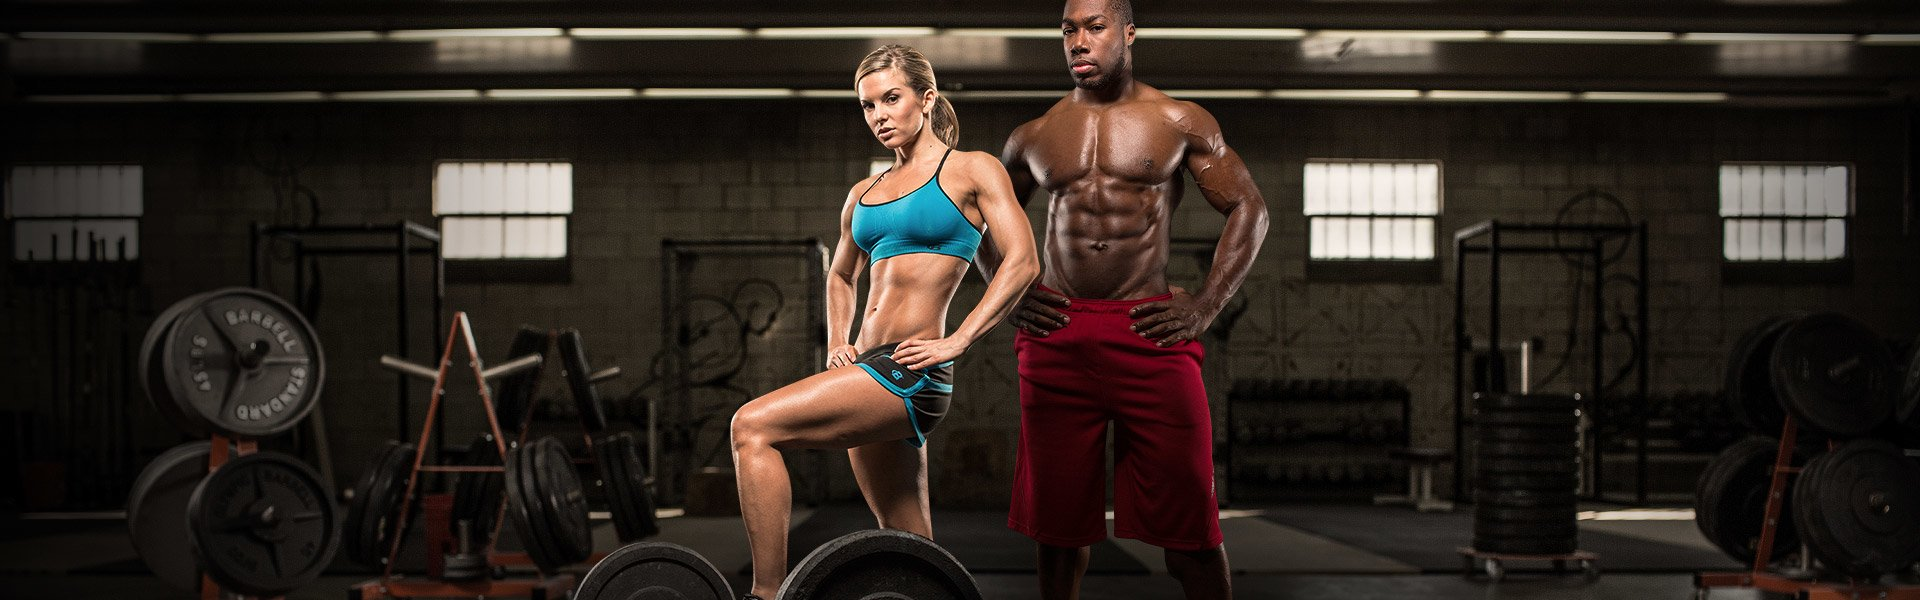 Whether You Re Training A Single Body Part Exercising With Limited Equipment Or Just Doing Cardio We Ve Got The Perfect Workout For